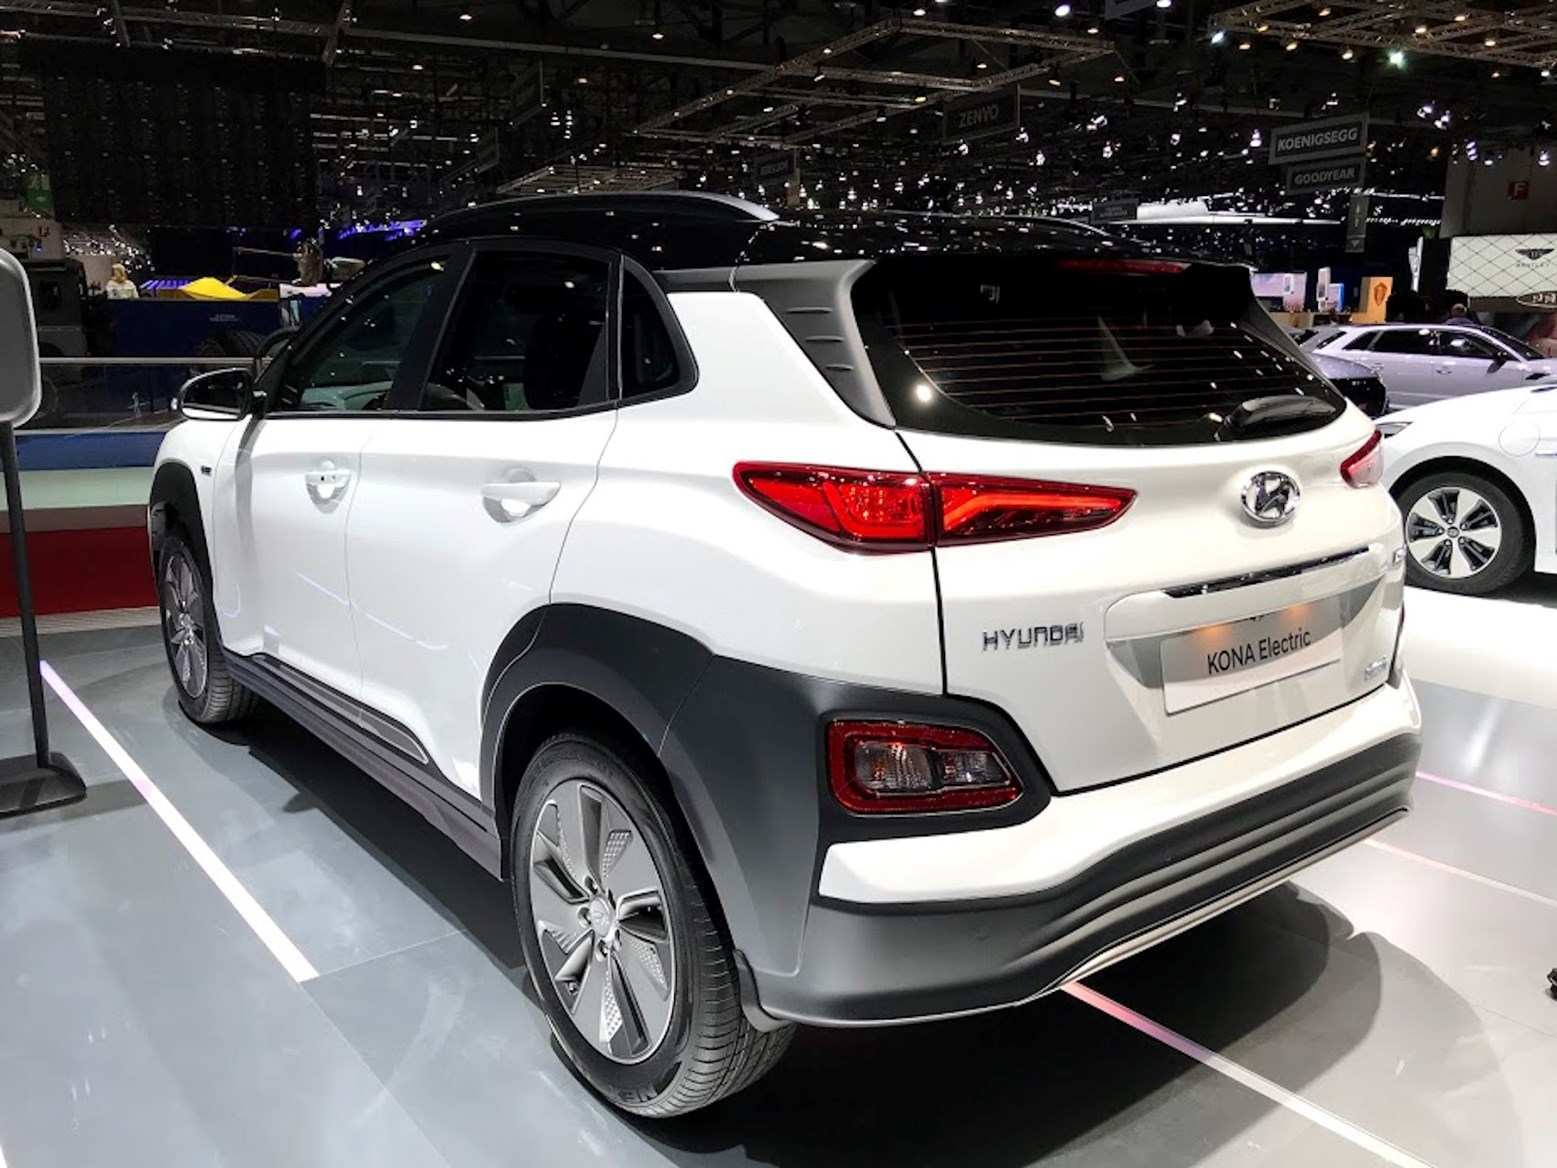 32 Best Hyundai Kona Electric 2020 Price And Review